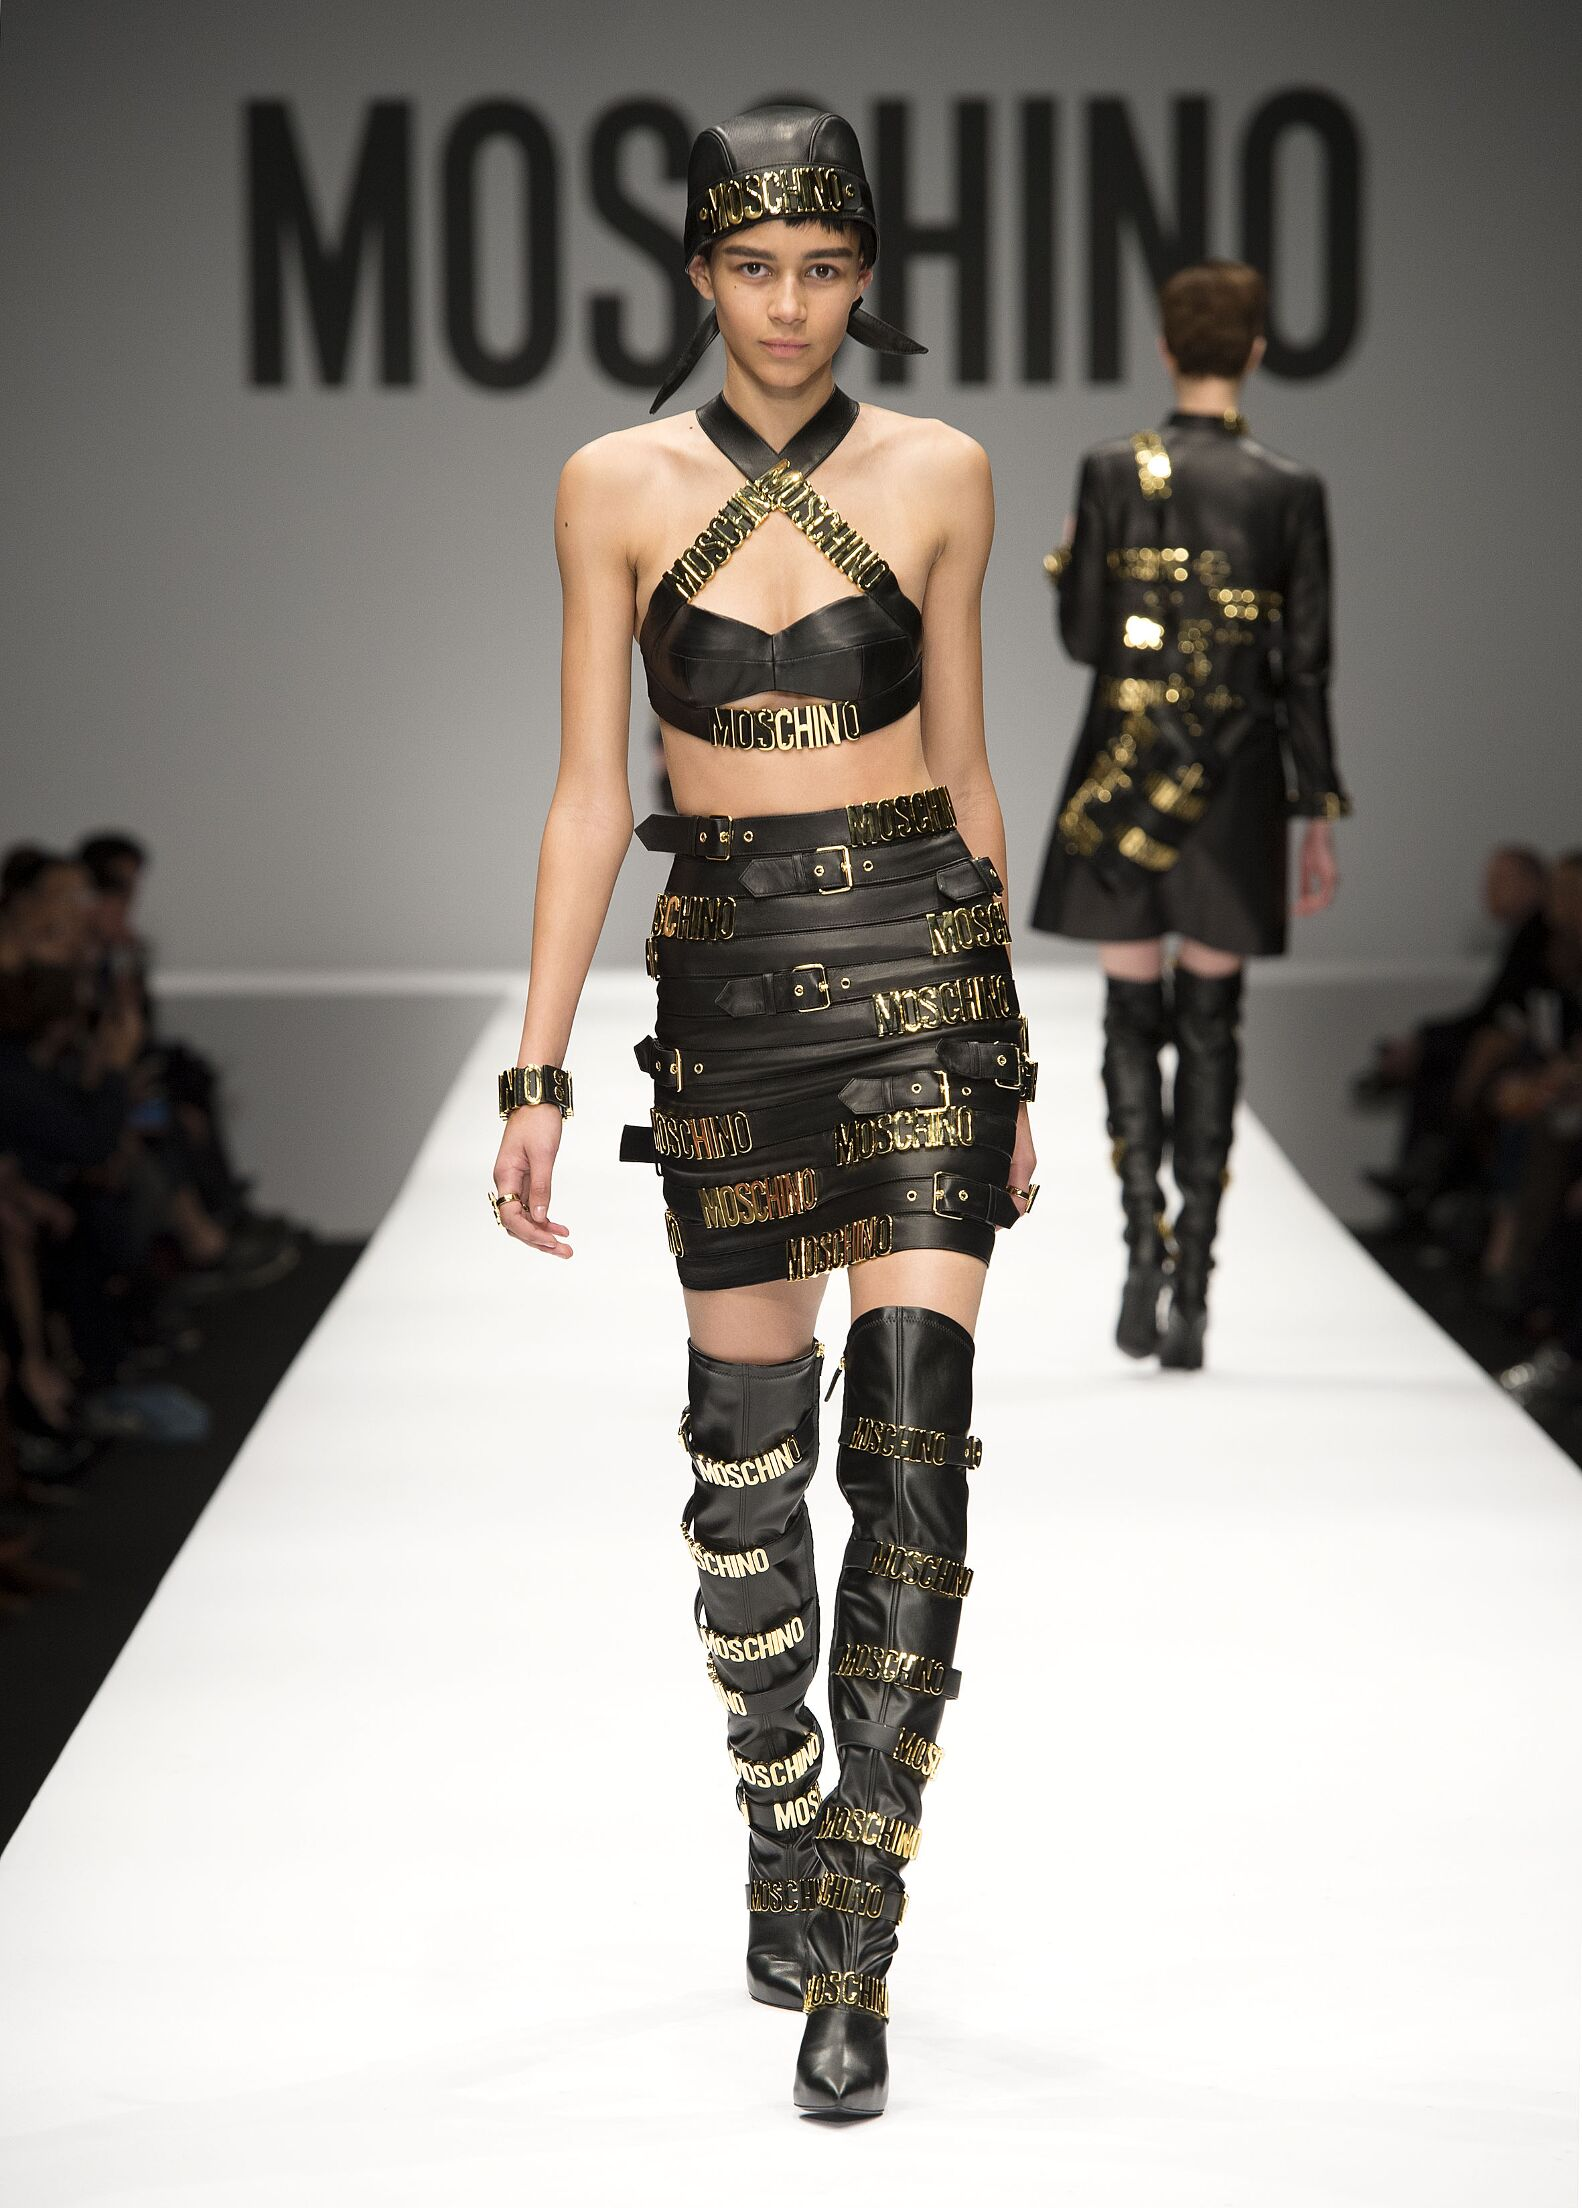 Catwalk Moschino Fashion Show Winter 2014